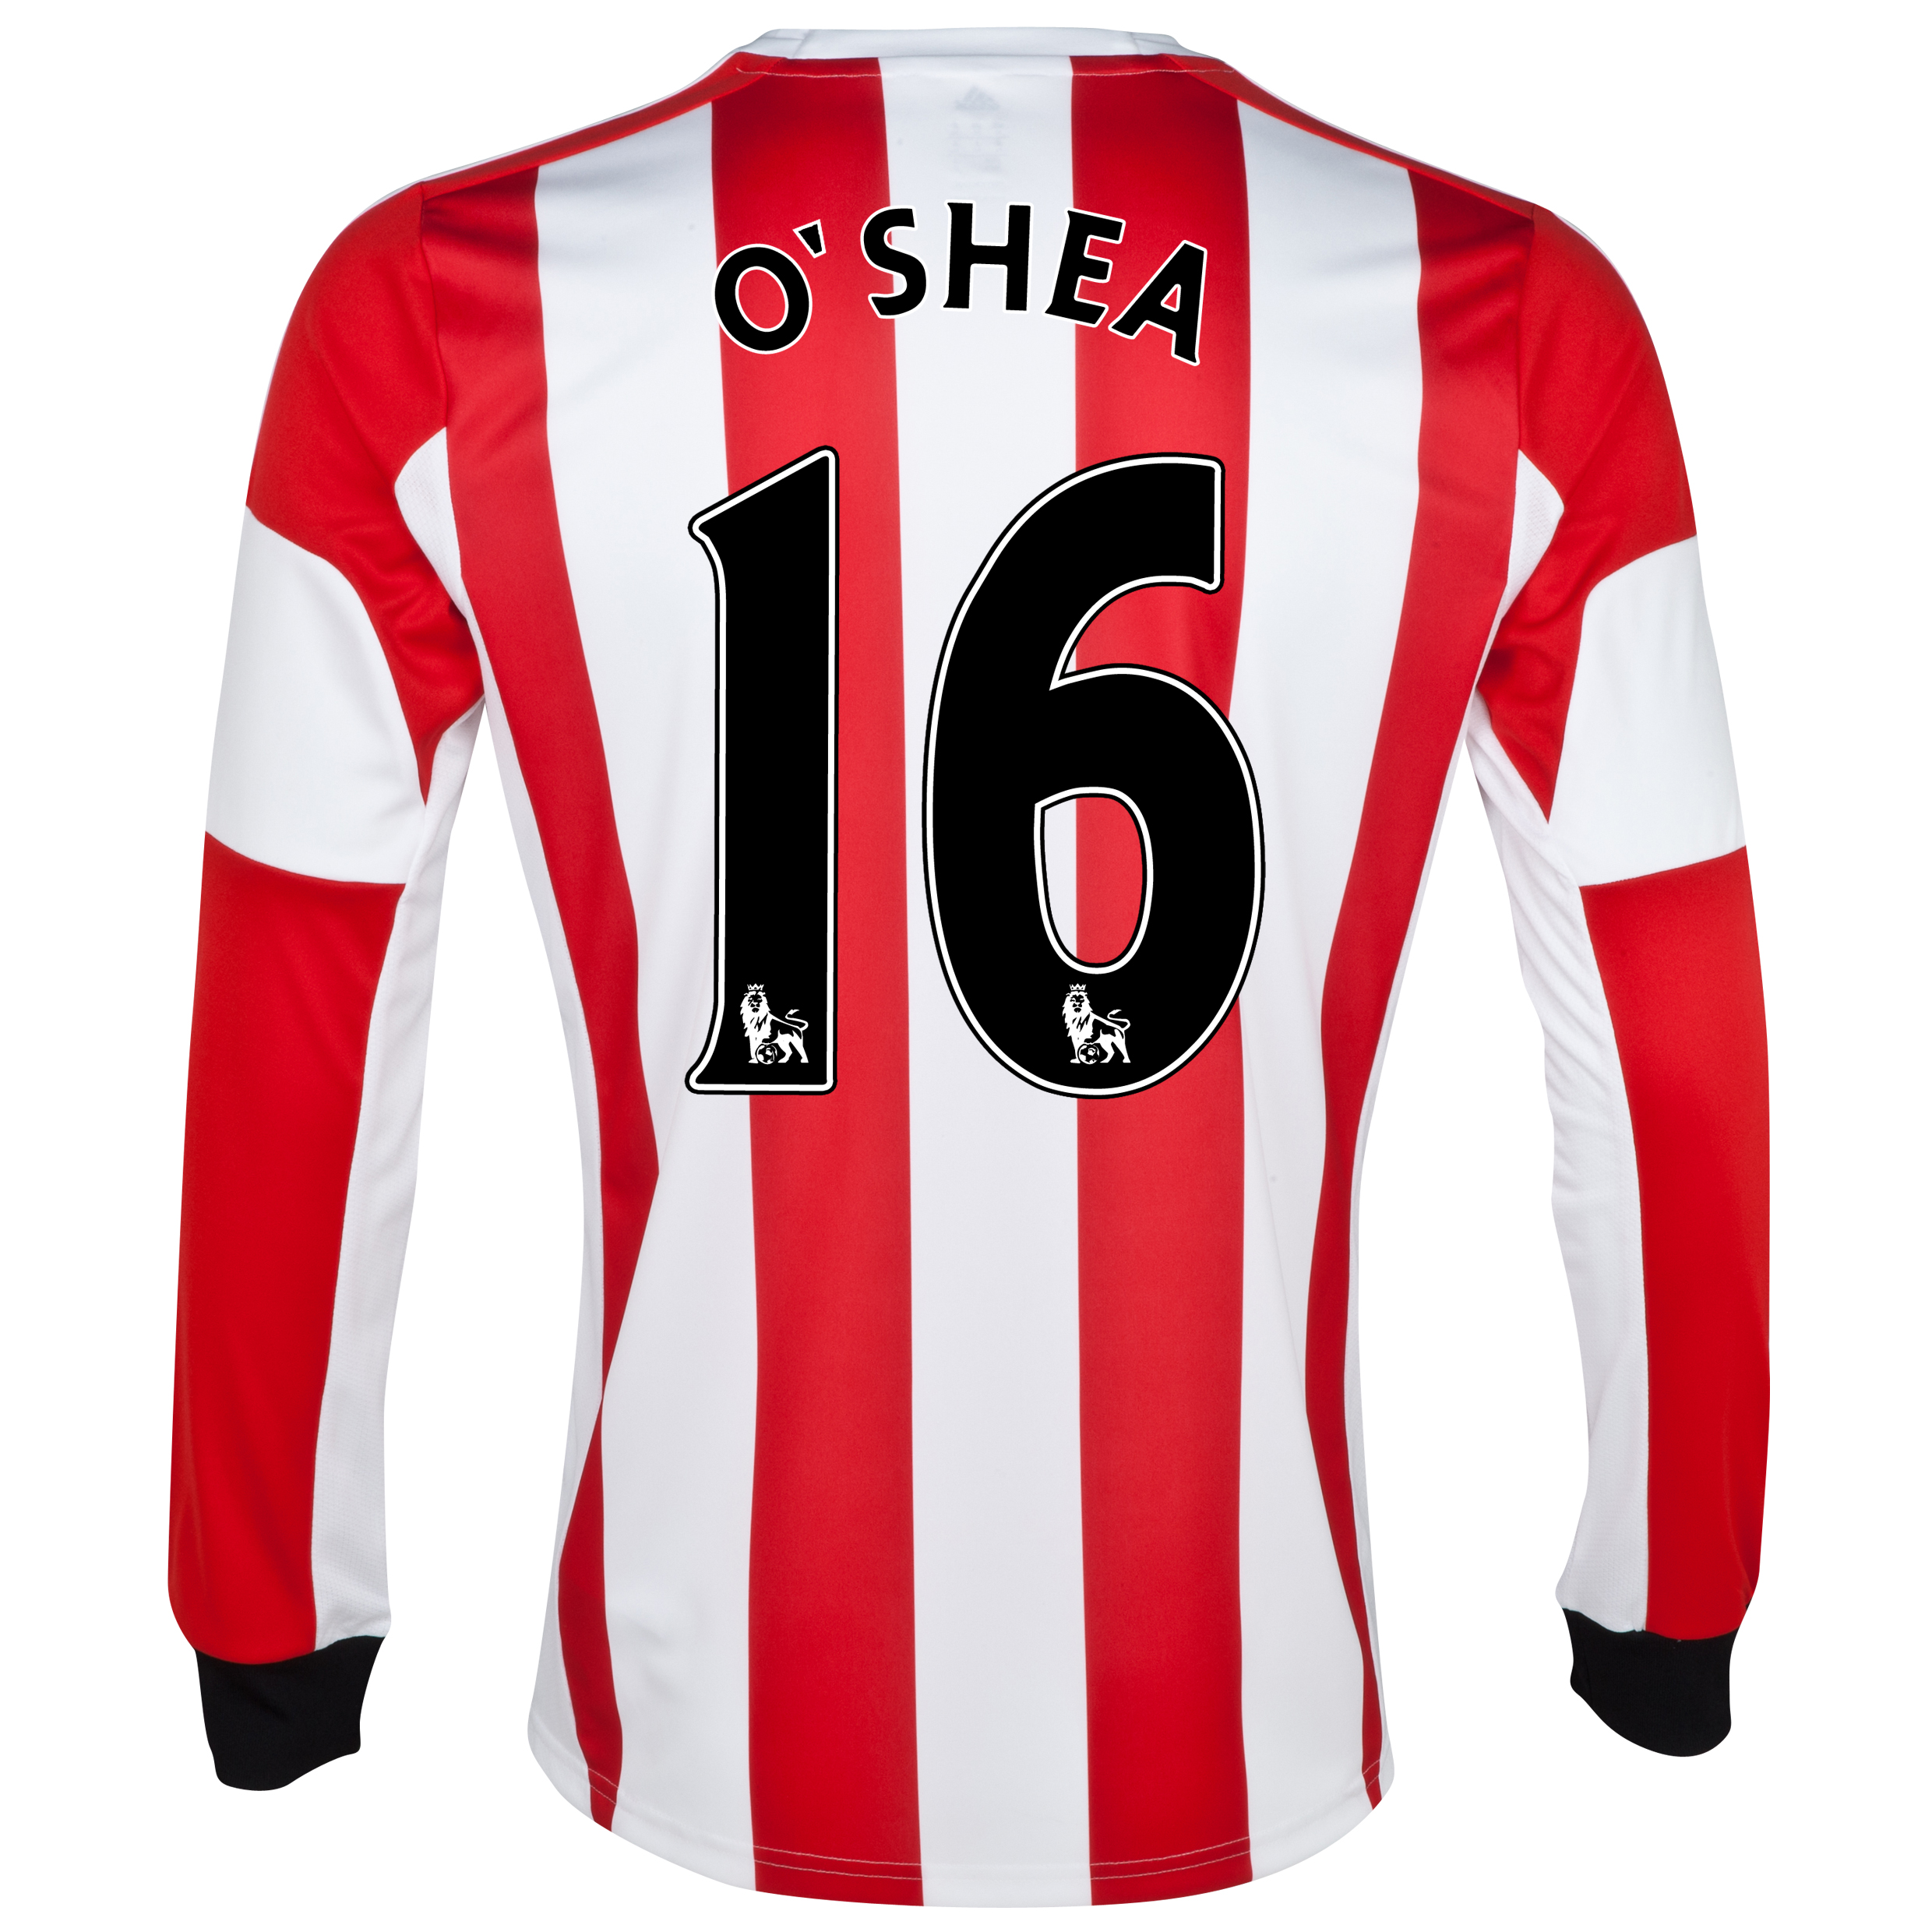 Sunderland Home Shirt 2013/14 - Long Sleeved  with O'Shea 16 printing